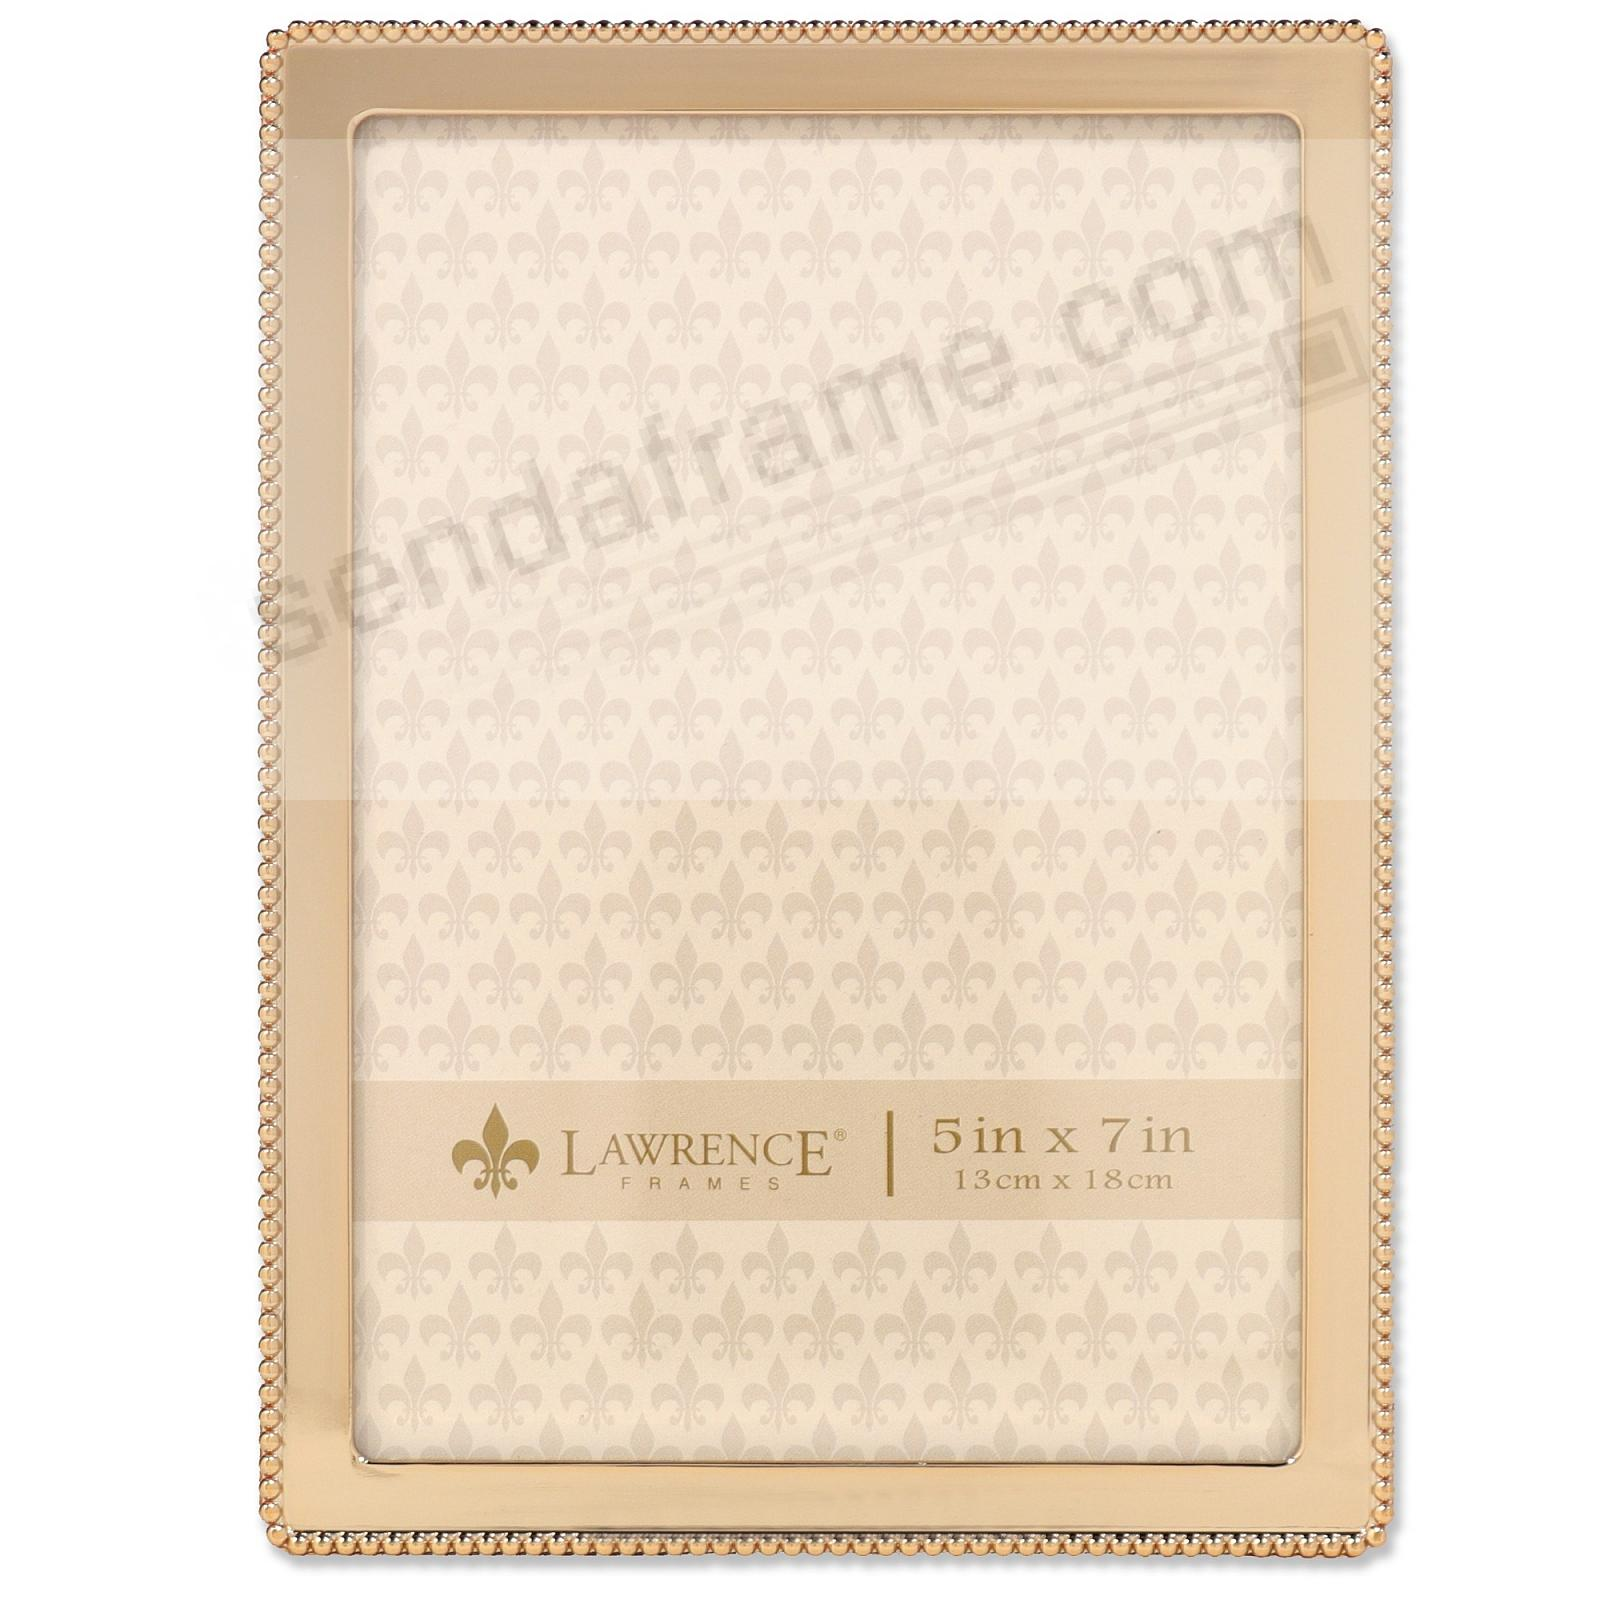 Beaded Trim Gold finish 5x7 frame by Lawrence®